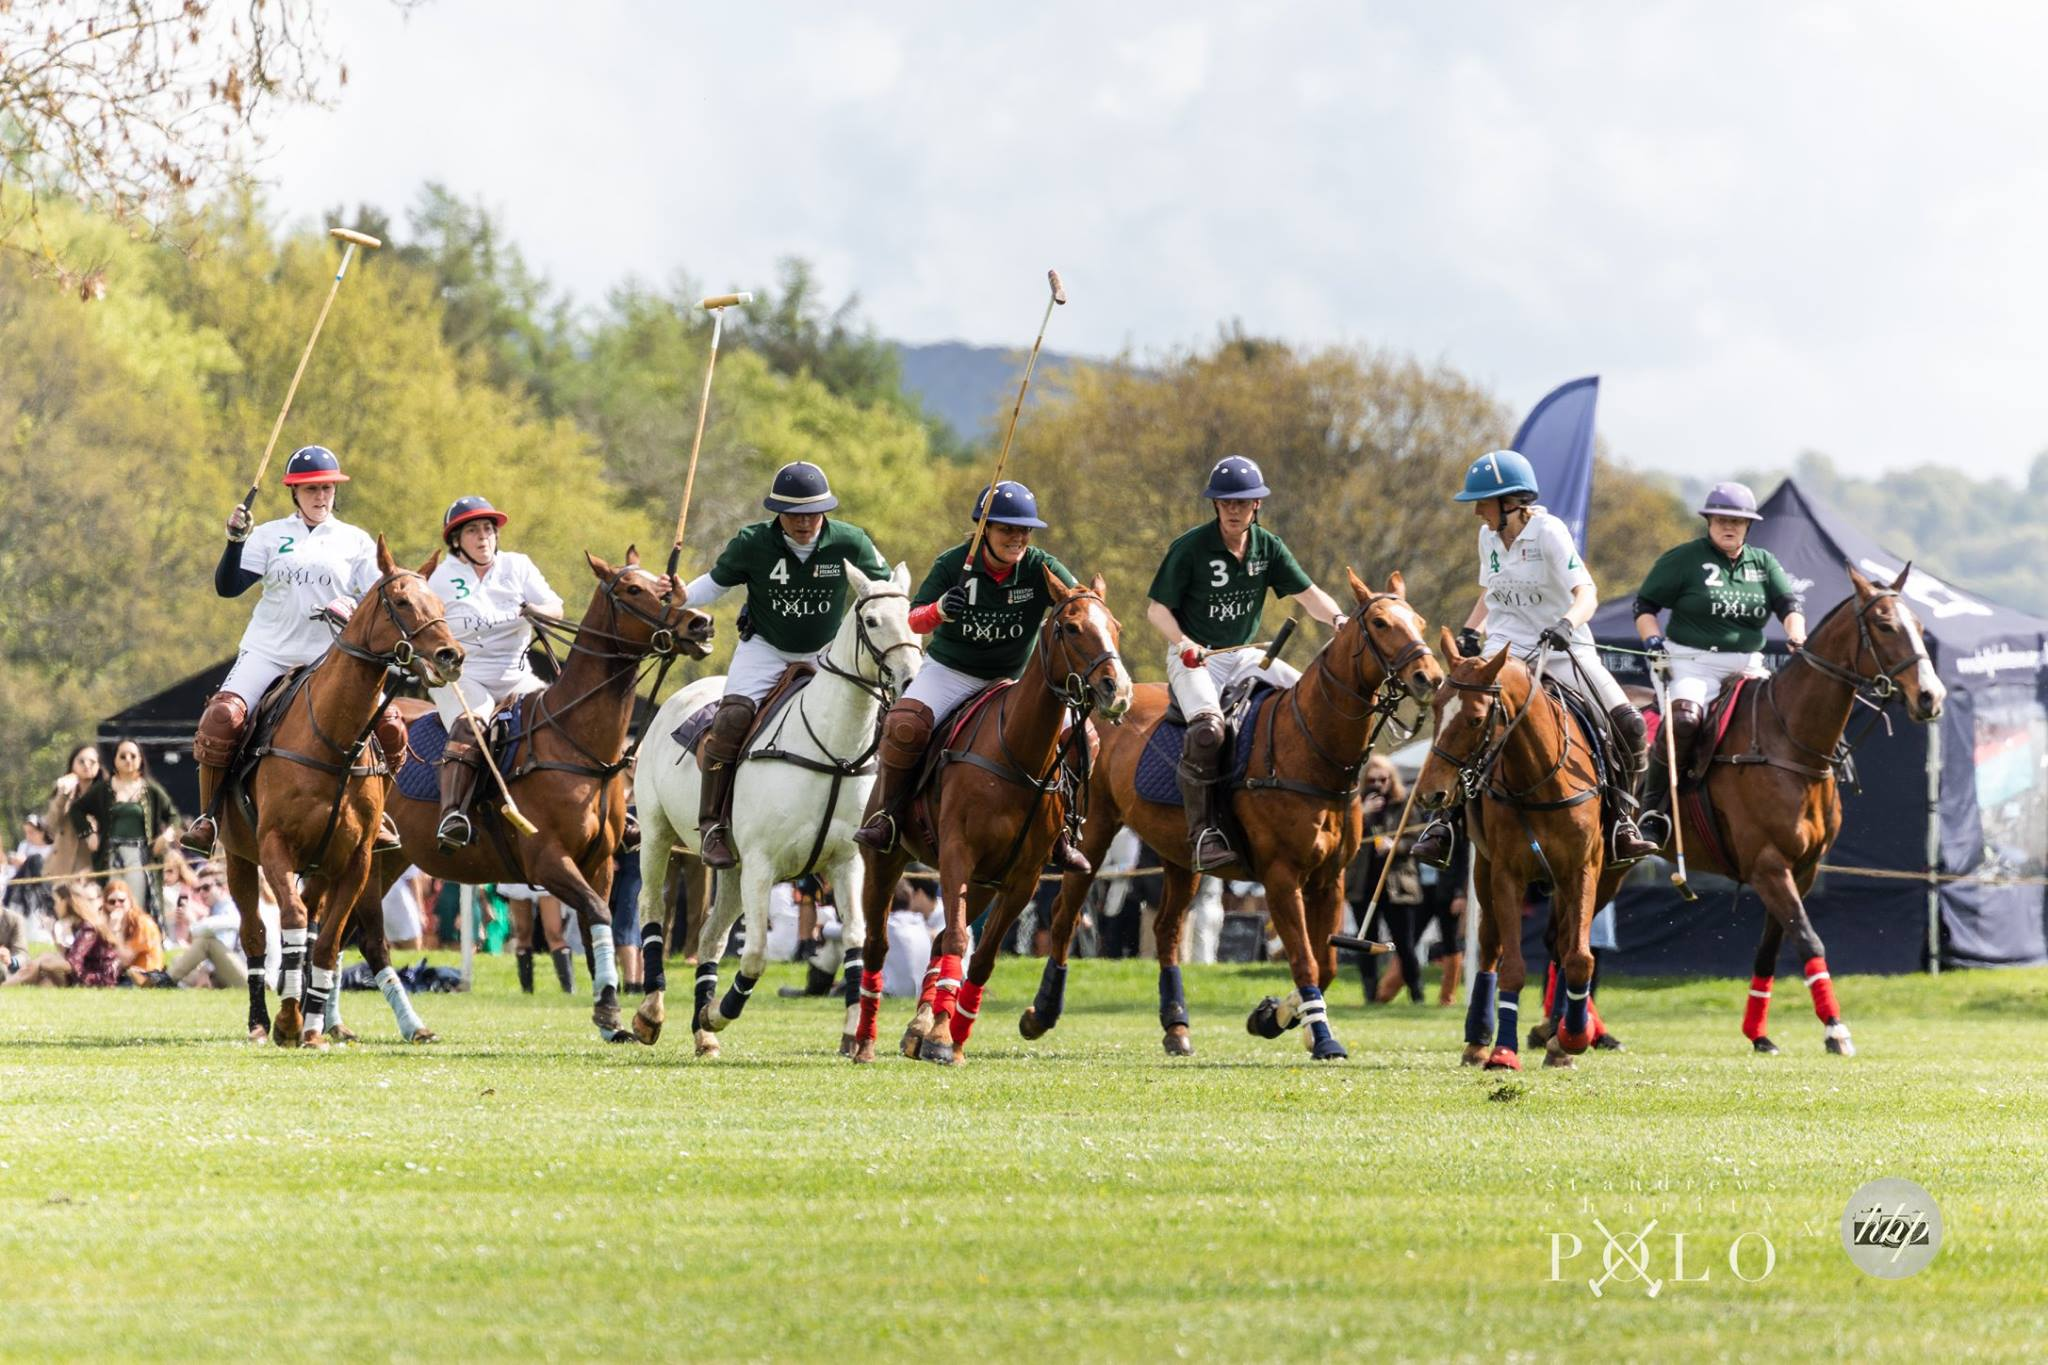 St Andrews Charity Polo Tournament 2019: A Springtime Success